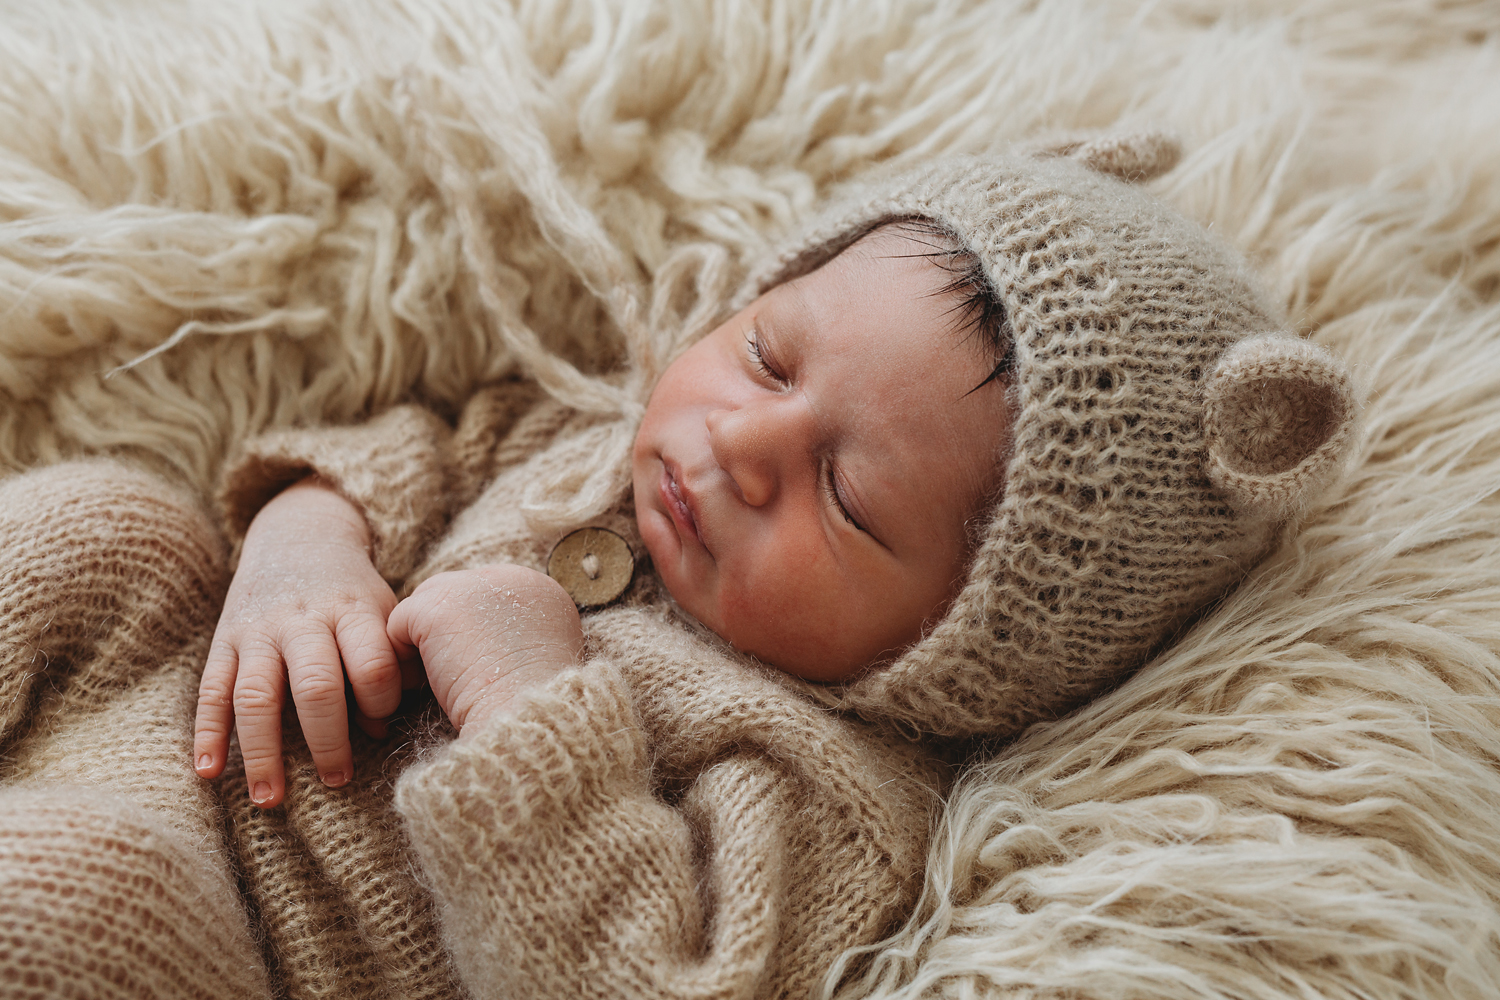 Newborn photography in rutherford nj of a sleeping baby boy in a teddy bear outfit